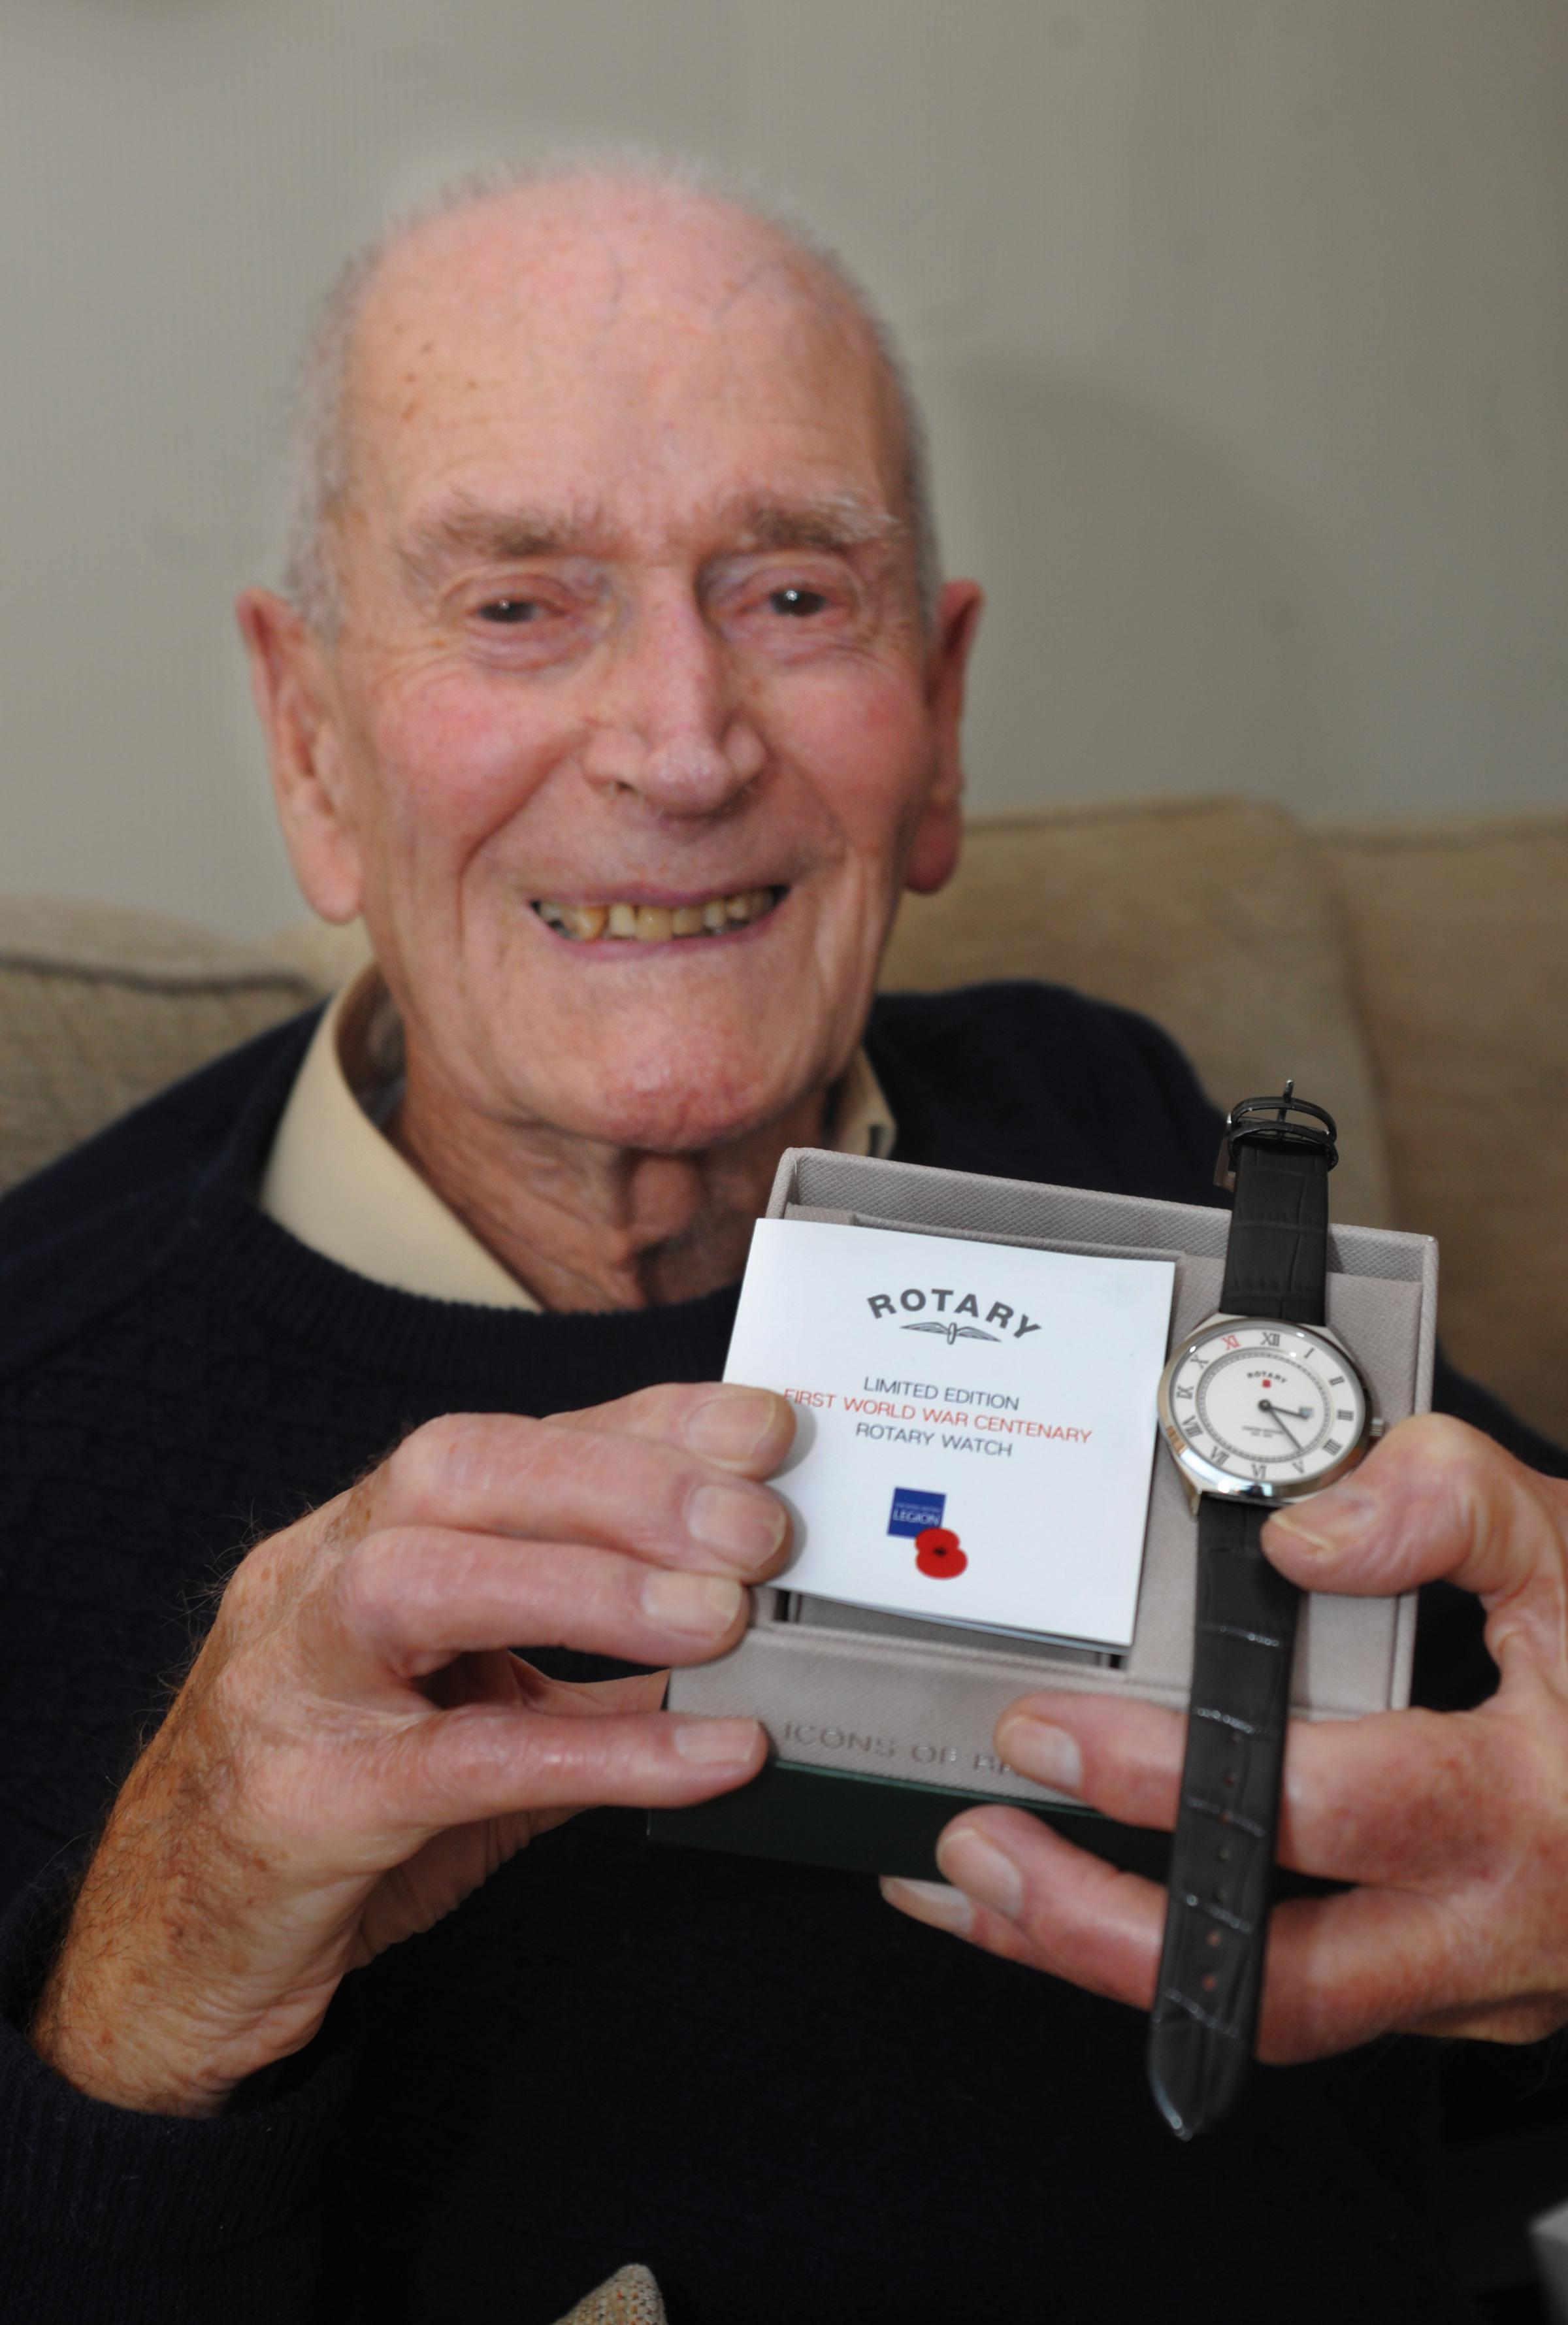 Eric Vaughan with the Rotary watch